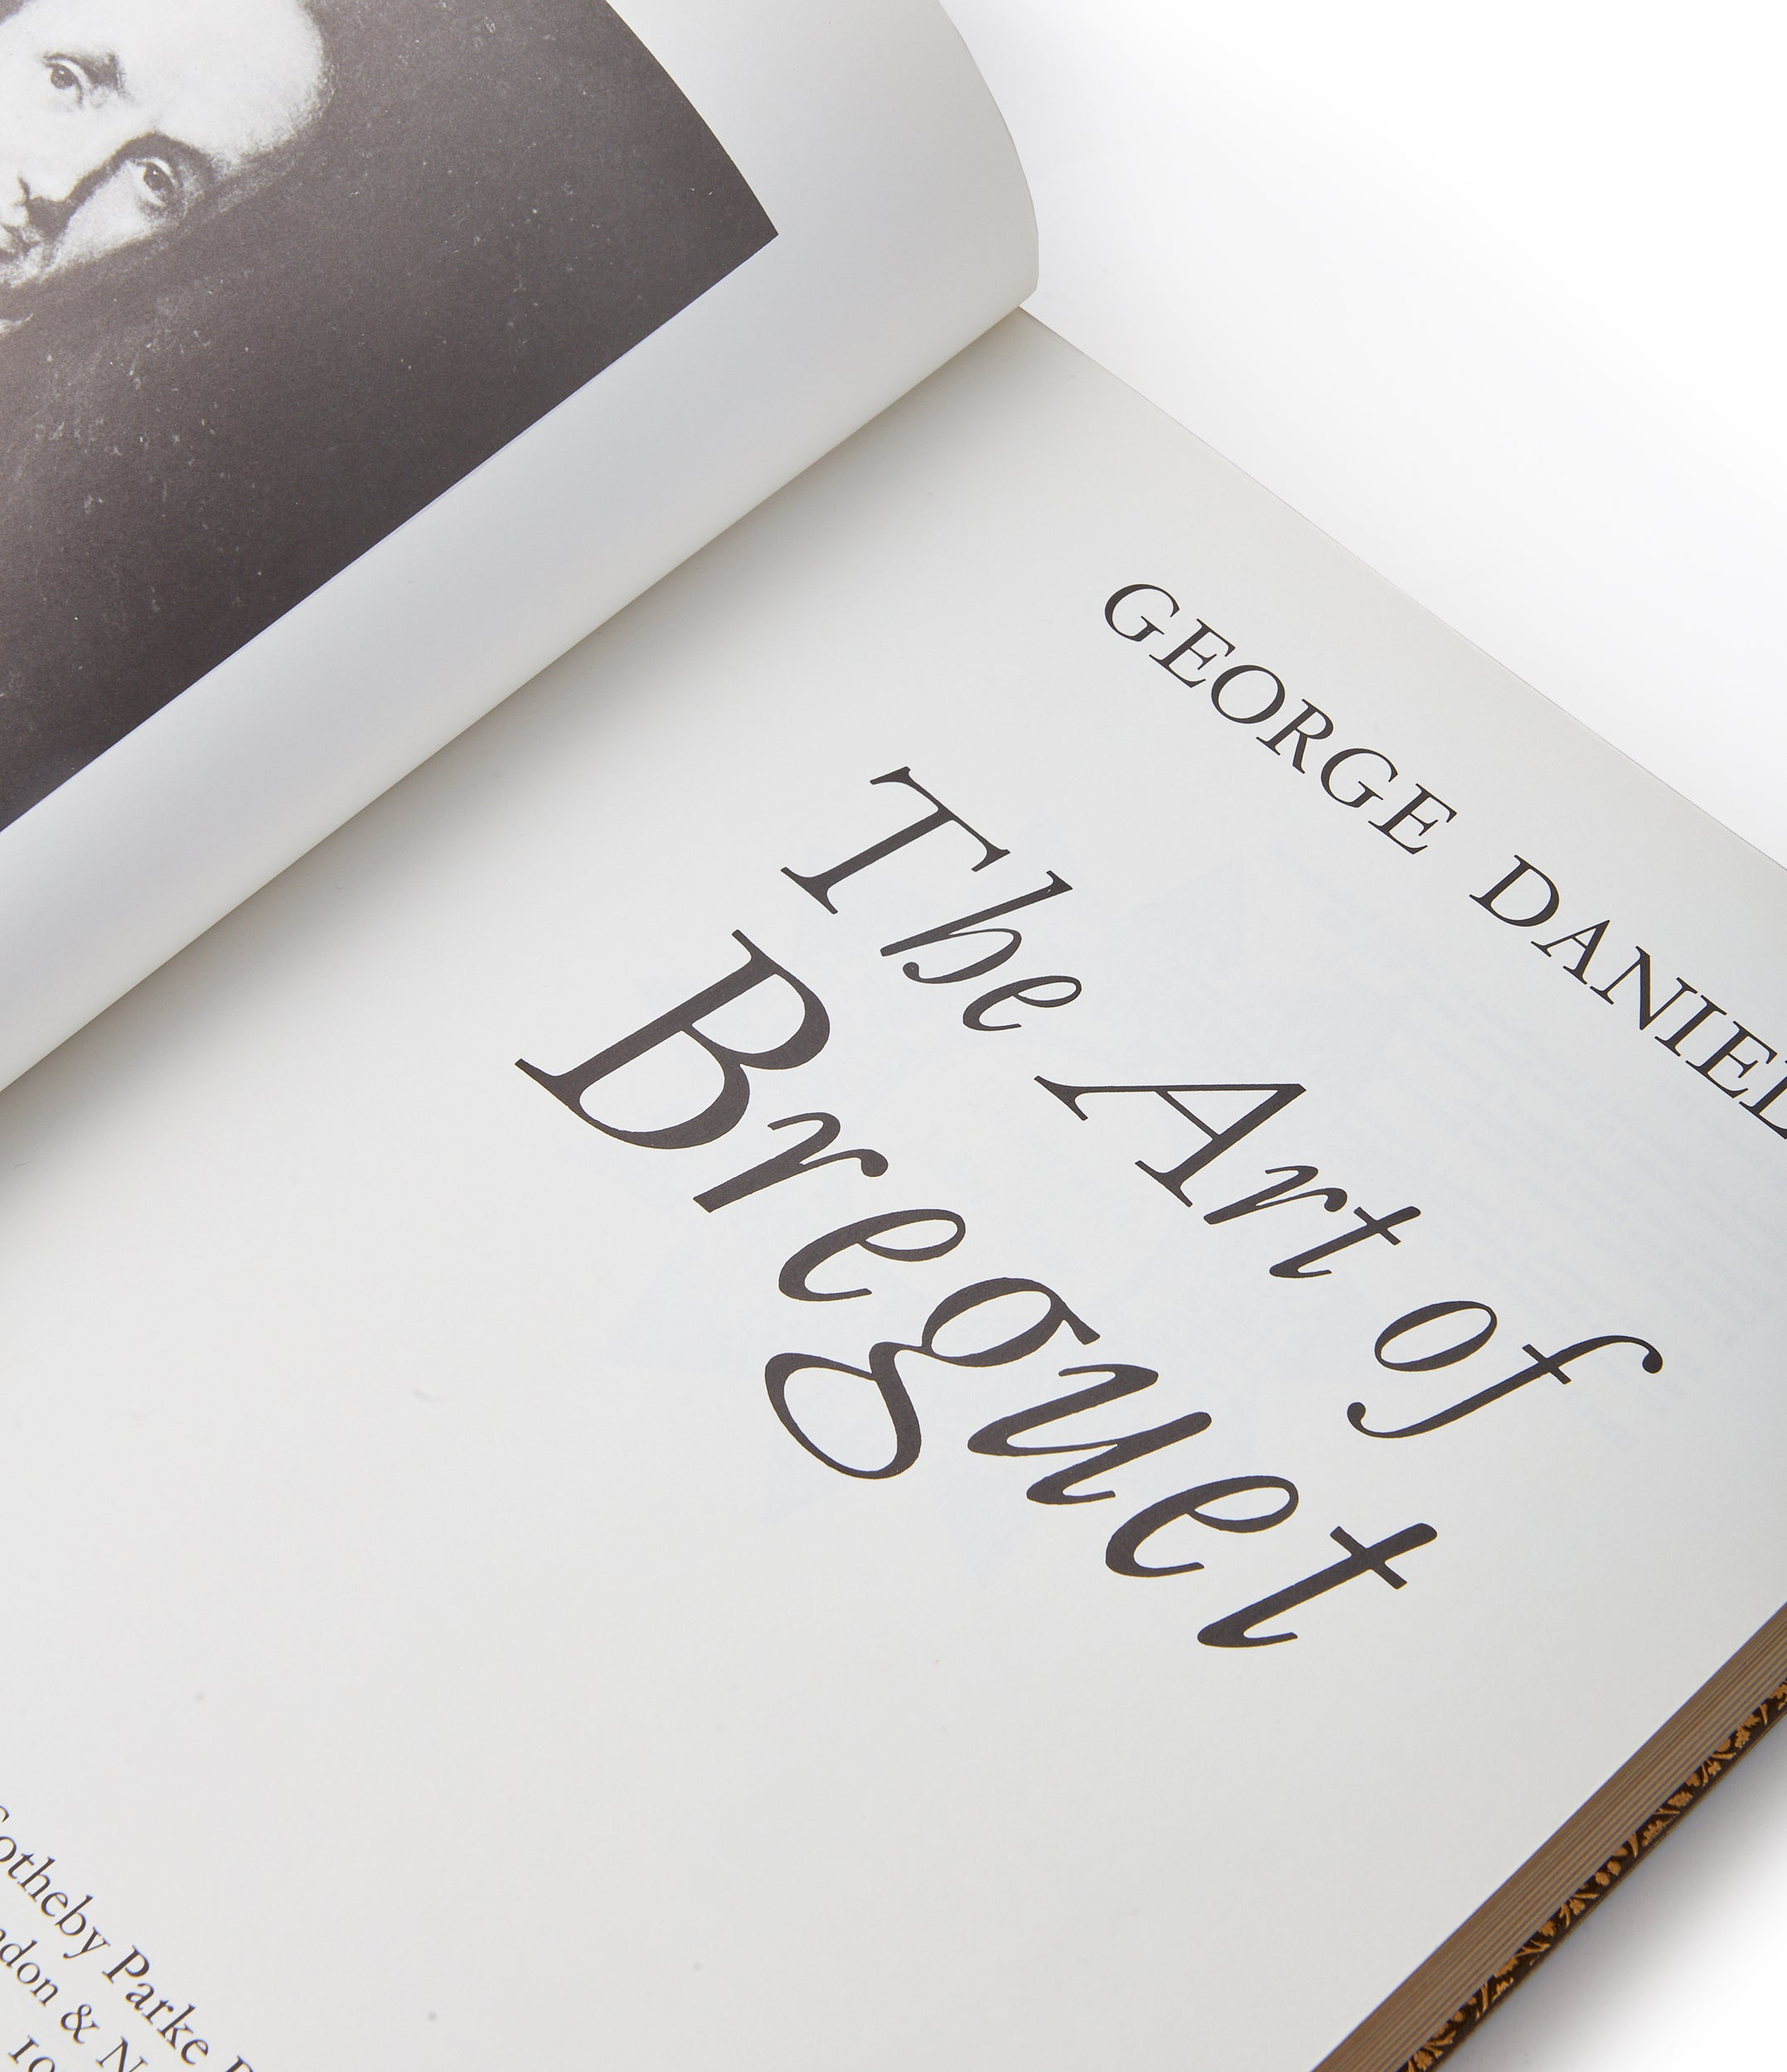 George Daniels CBE watchmaker's book on The Art of Breguet rare specialy-bound first edition book signed and gifted by the author at A Collected Man London